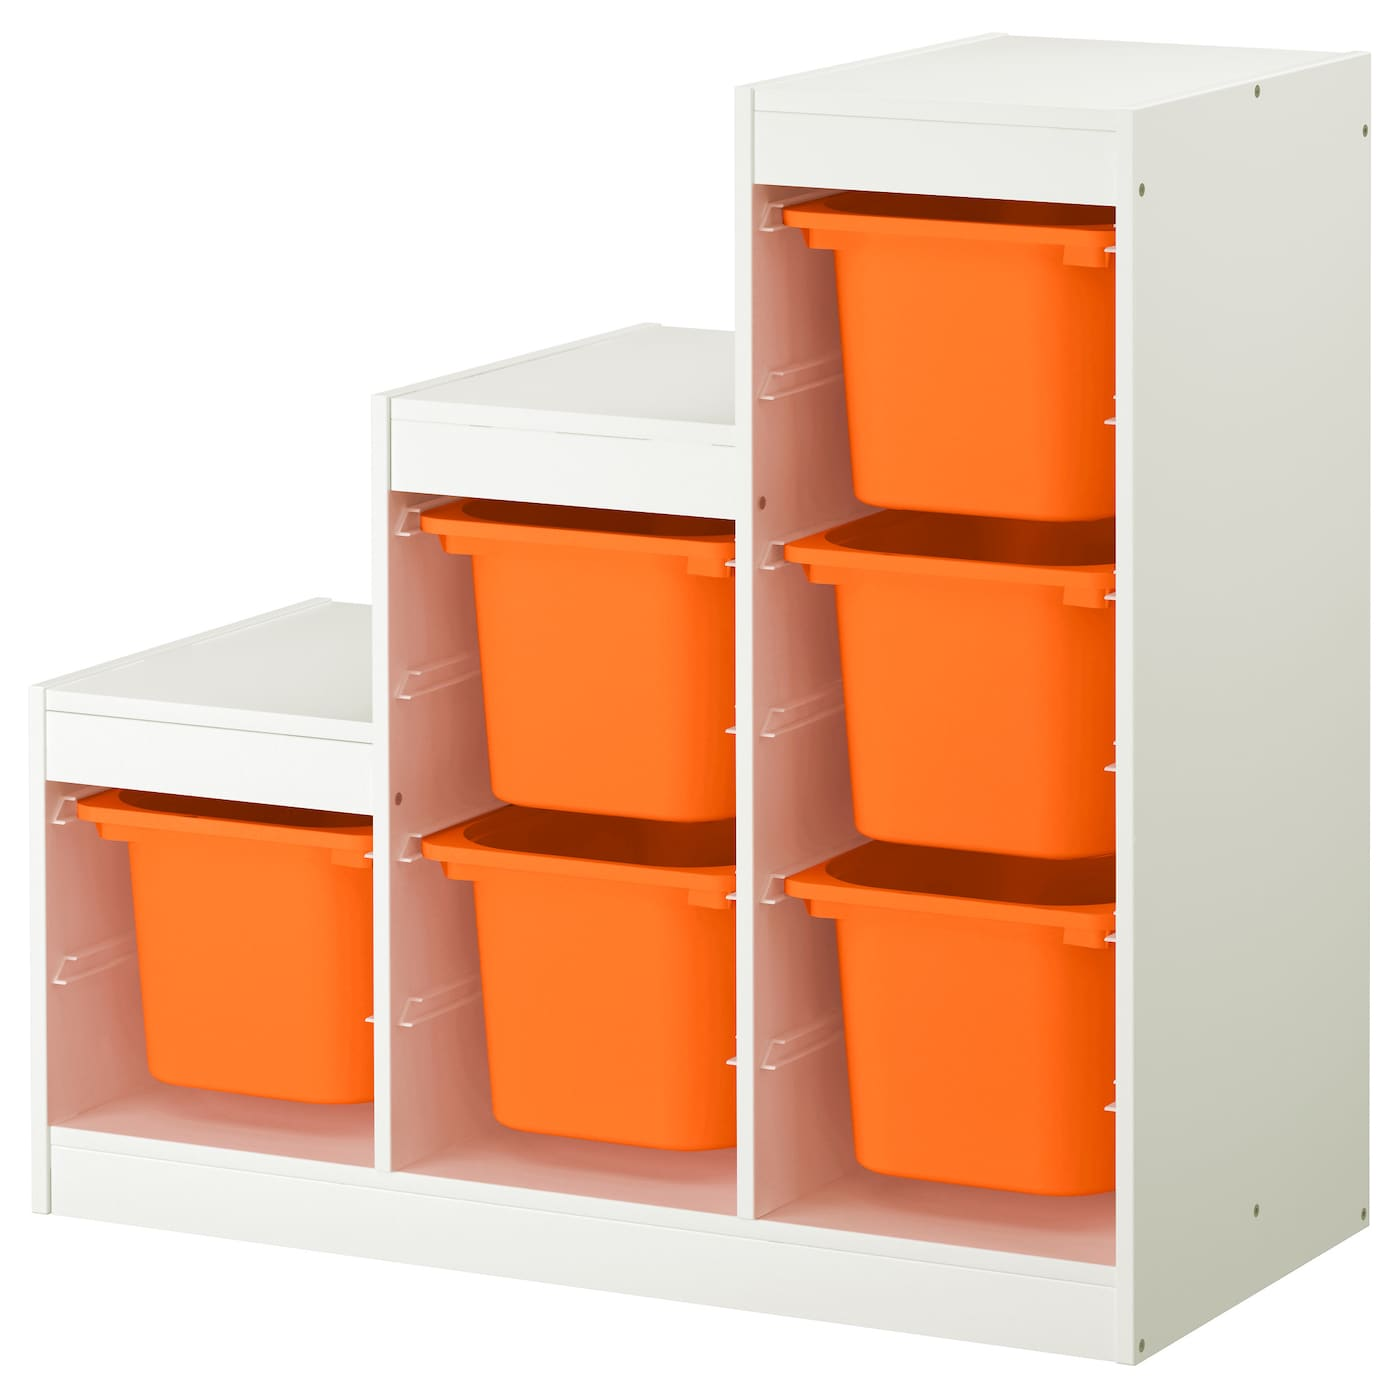 trofast storage combination white orange 99x44x94 cm ikea. Black Bedroom Furniture Sets. Home Design Ideas